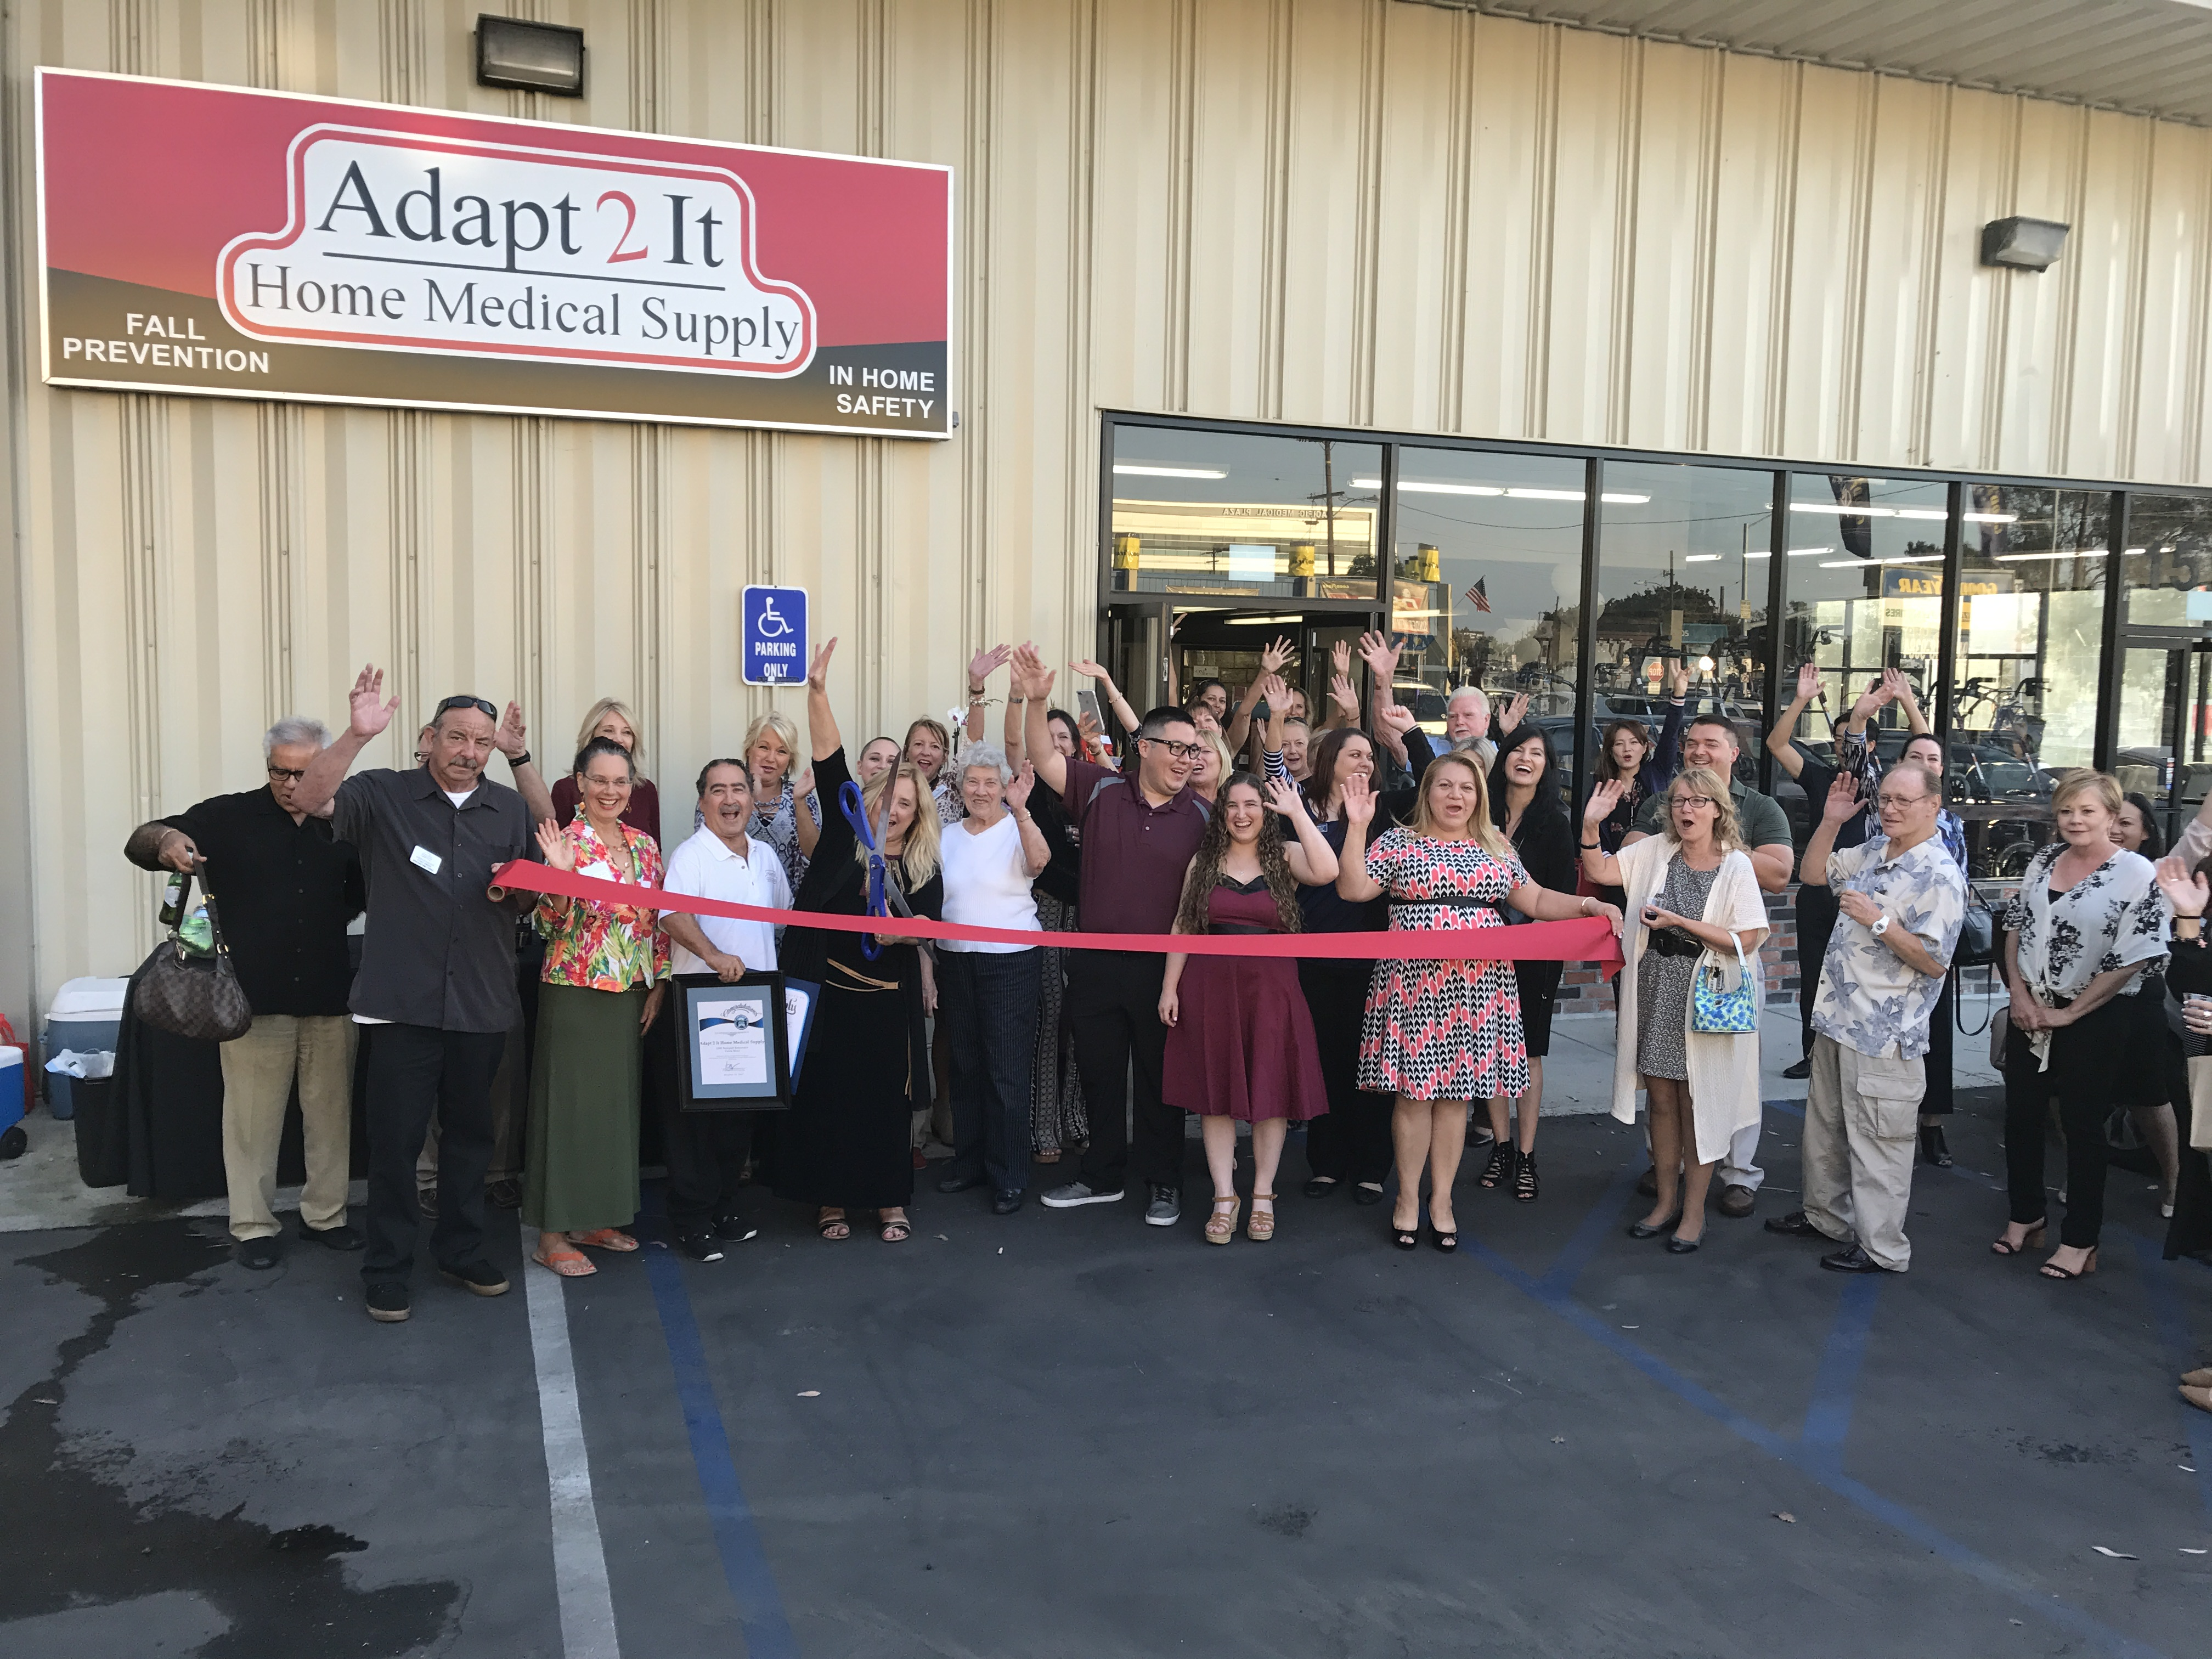 Adapt2it-Ribbon-Cutting-photoo.jpg